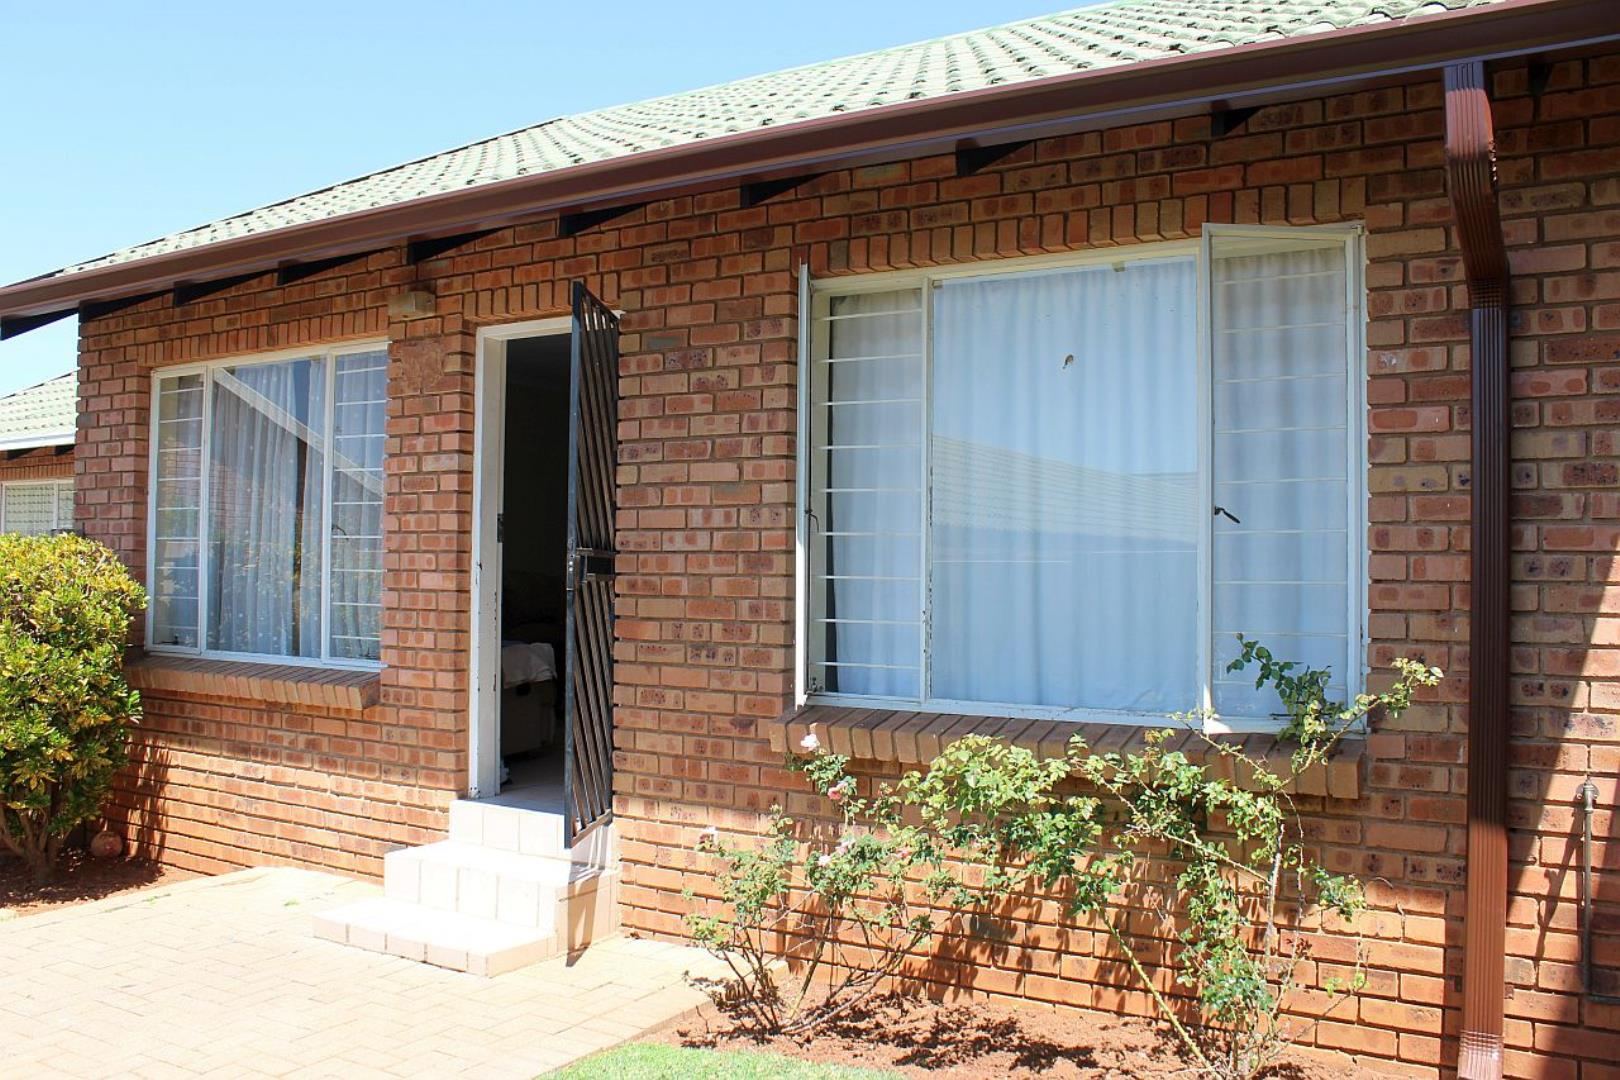 2 Bedroom  Cluster for Sale in Midrand - Gauteng